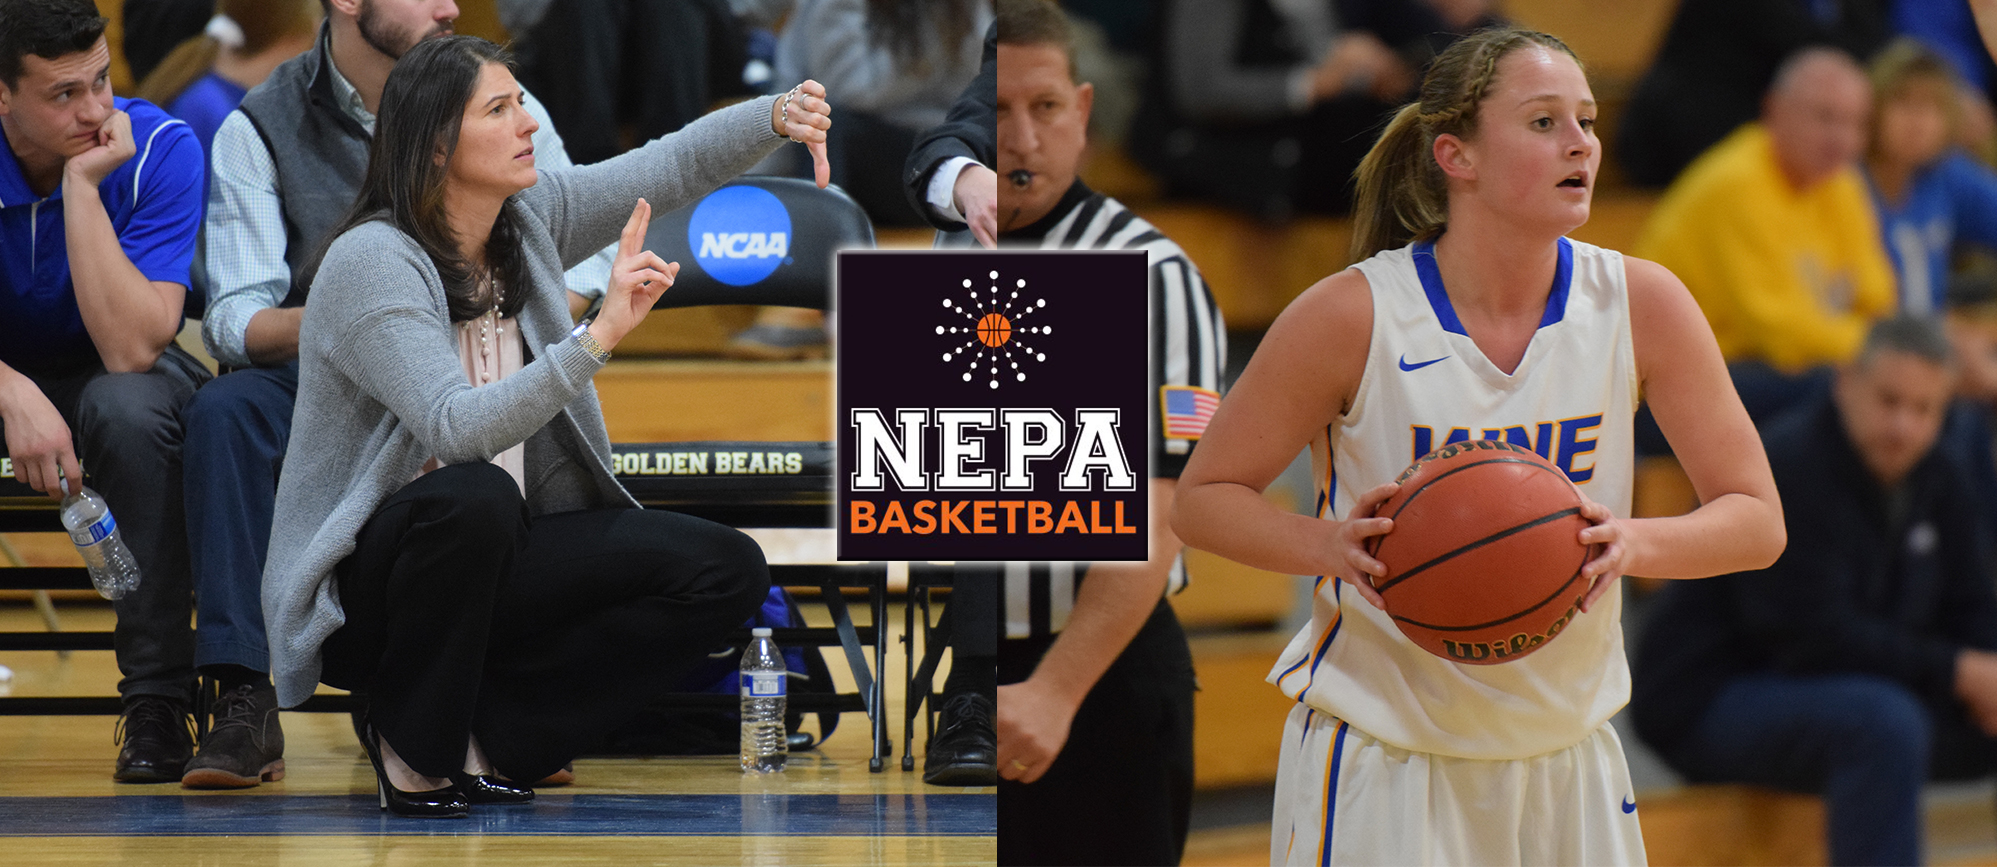 Western New England head women's basketball coach Nicole Chaszar and junior guard Meghan Gilhool were featured in an article on nepabasketball.com on Thursday.